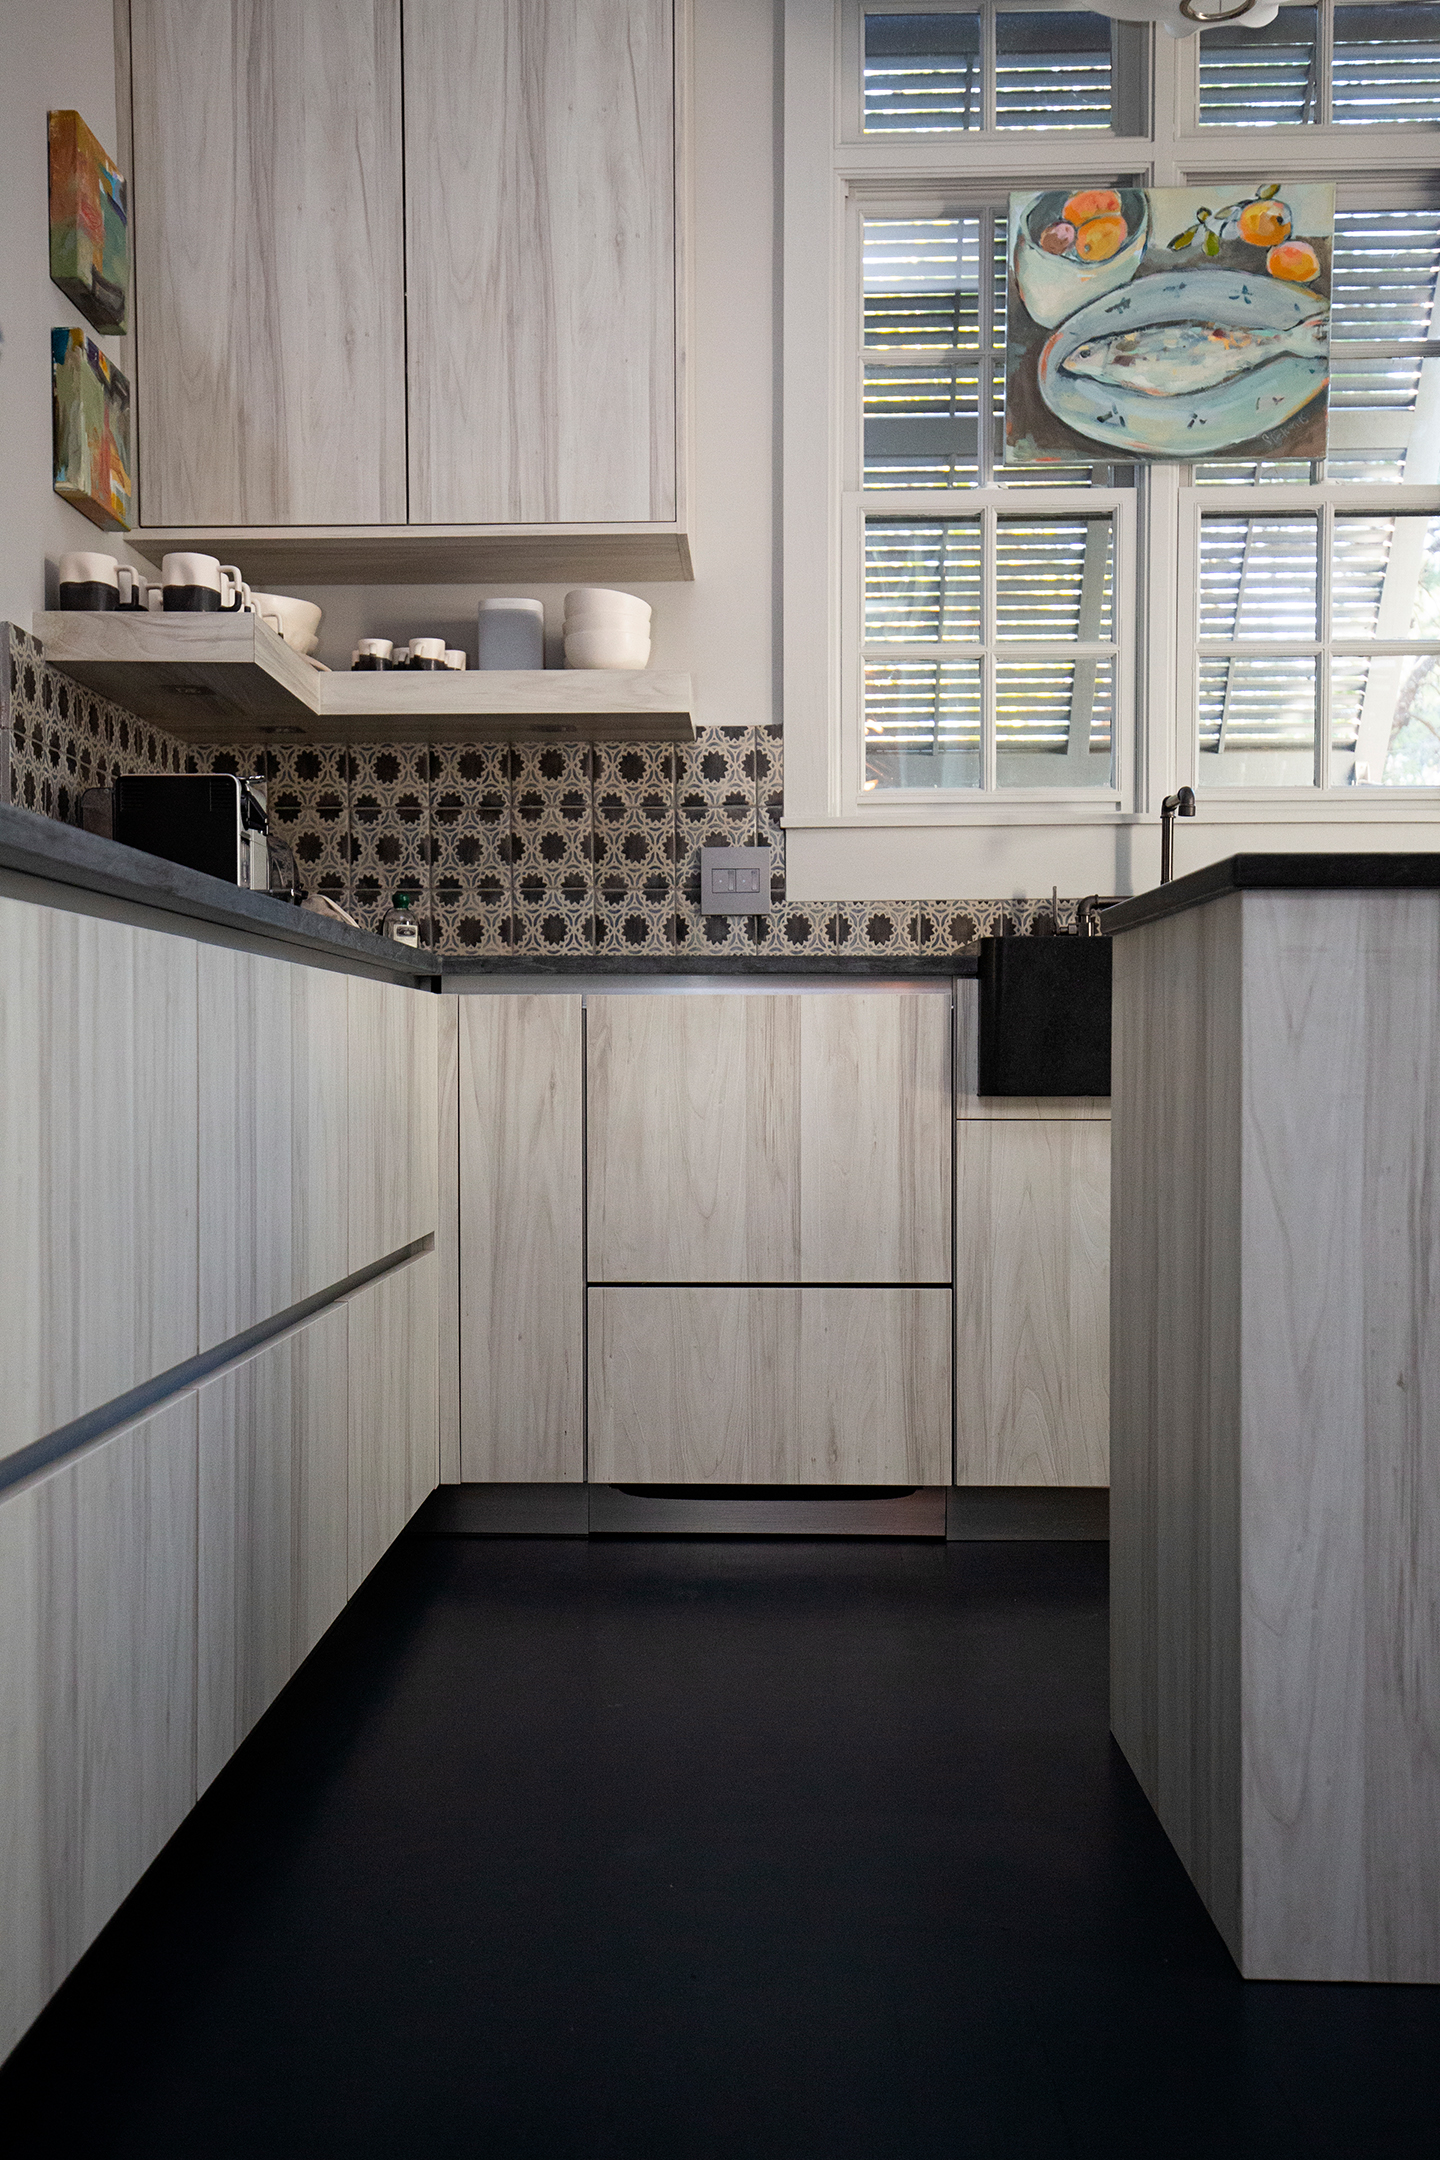 marquis-fine-cabinetry-milano-kitchen-remodel